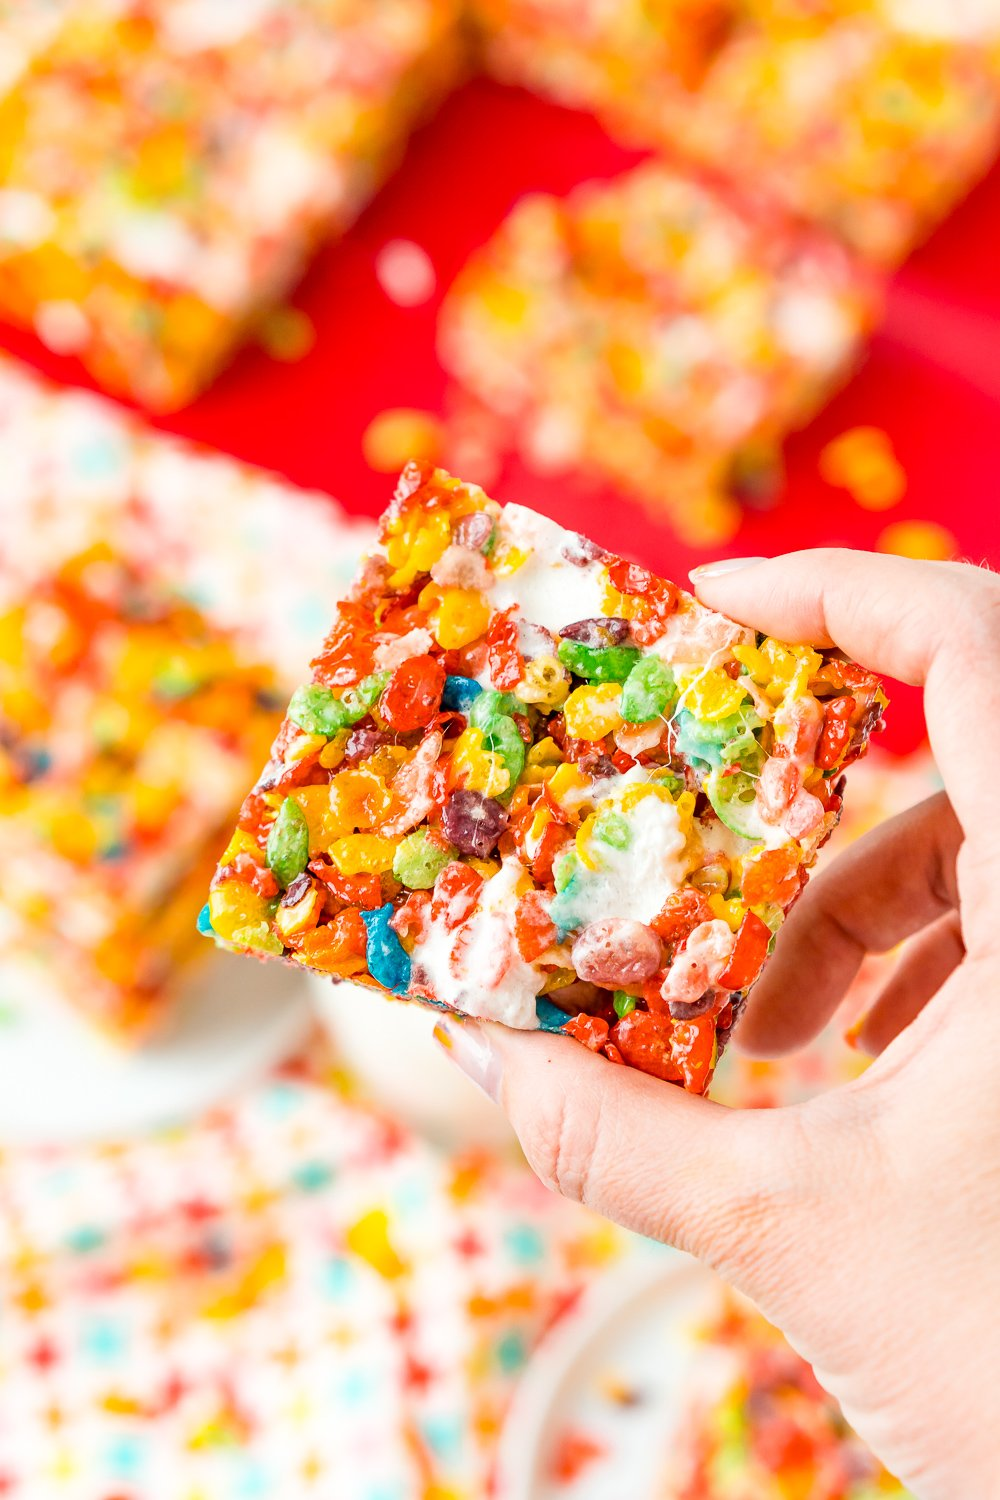 Woman's hand holding a fruity pebbles treat, more treats are in the background on a red cutting board.